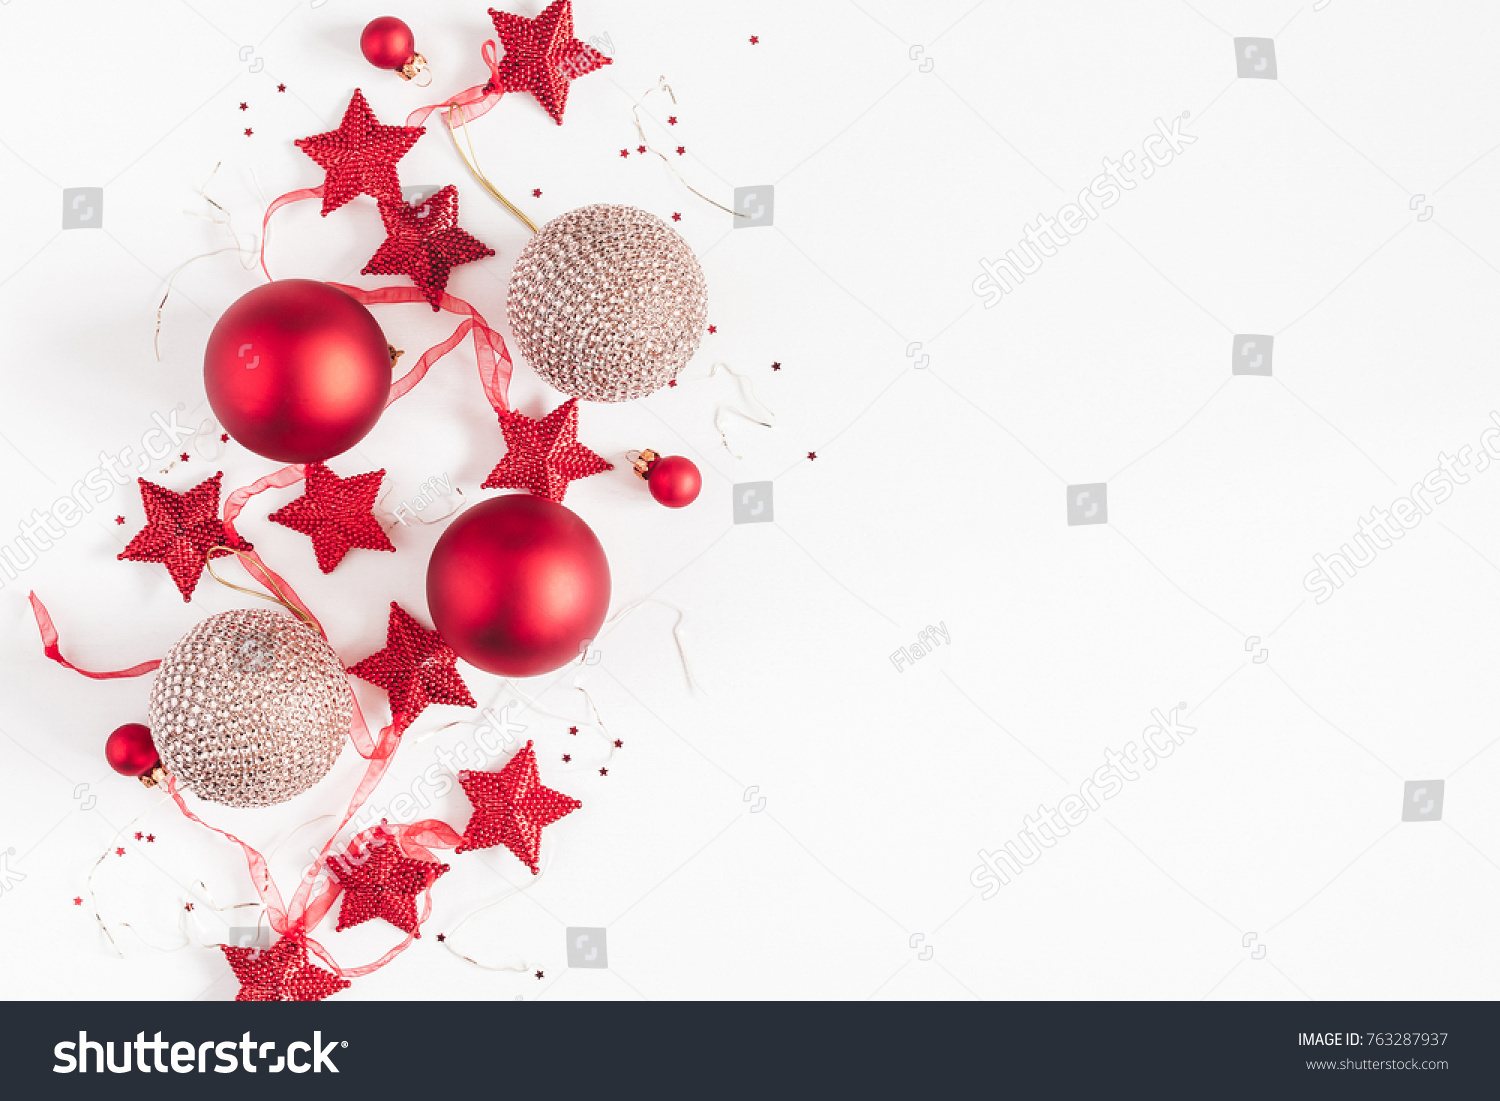 Christmas composition. Christmas balls, garland, red and golden decorations on white background. Flat lay, top view, copy space #763287937